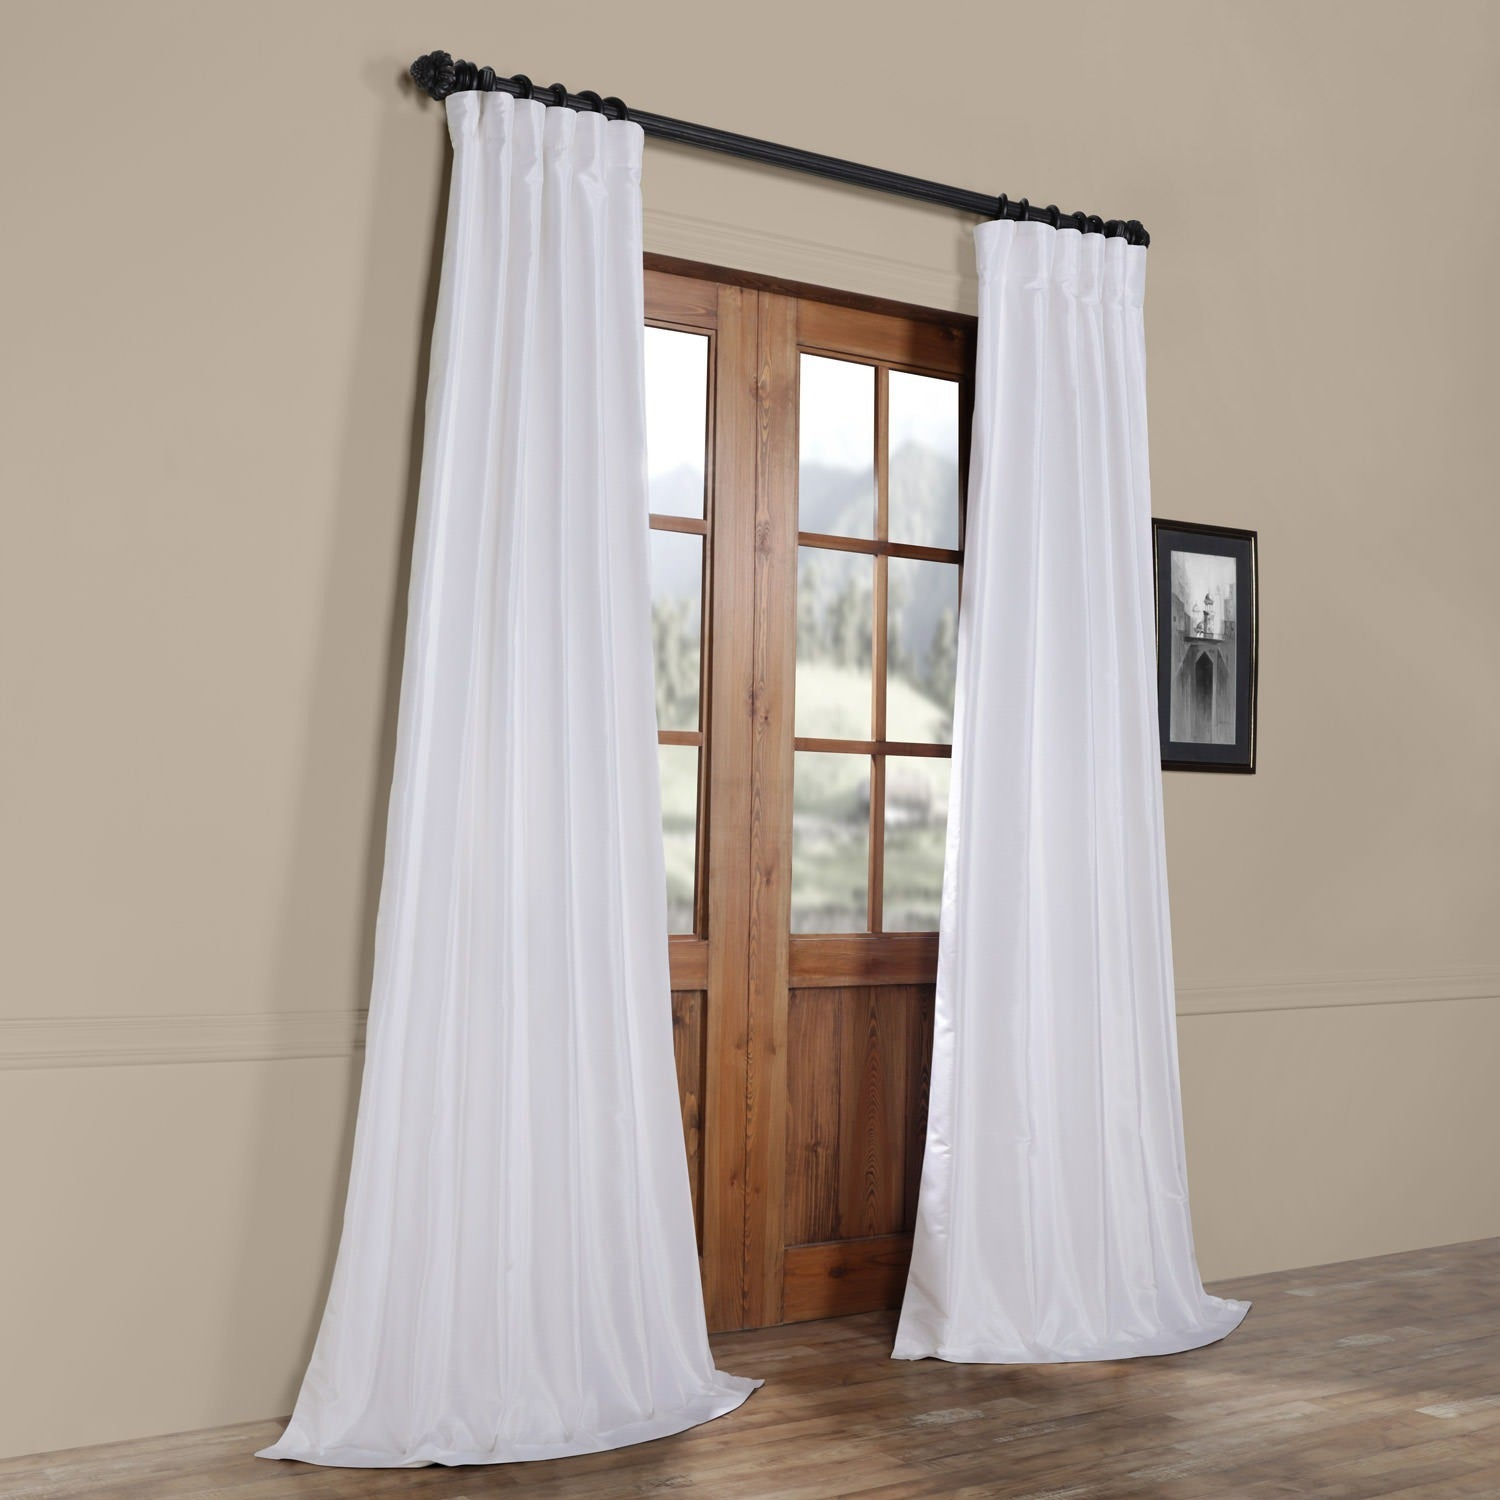 Ice White Vintage Faux Textured Dupioni Silk 108L Curtain Panel In Ice White Vintage Faux Textured Silk Curtain Panels (View 16 of 20)